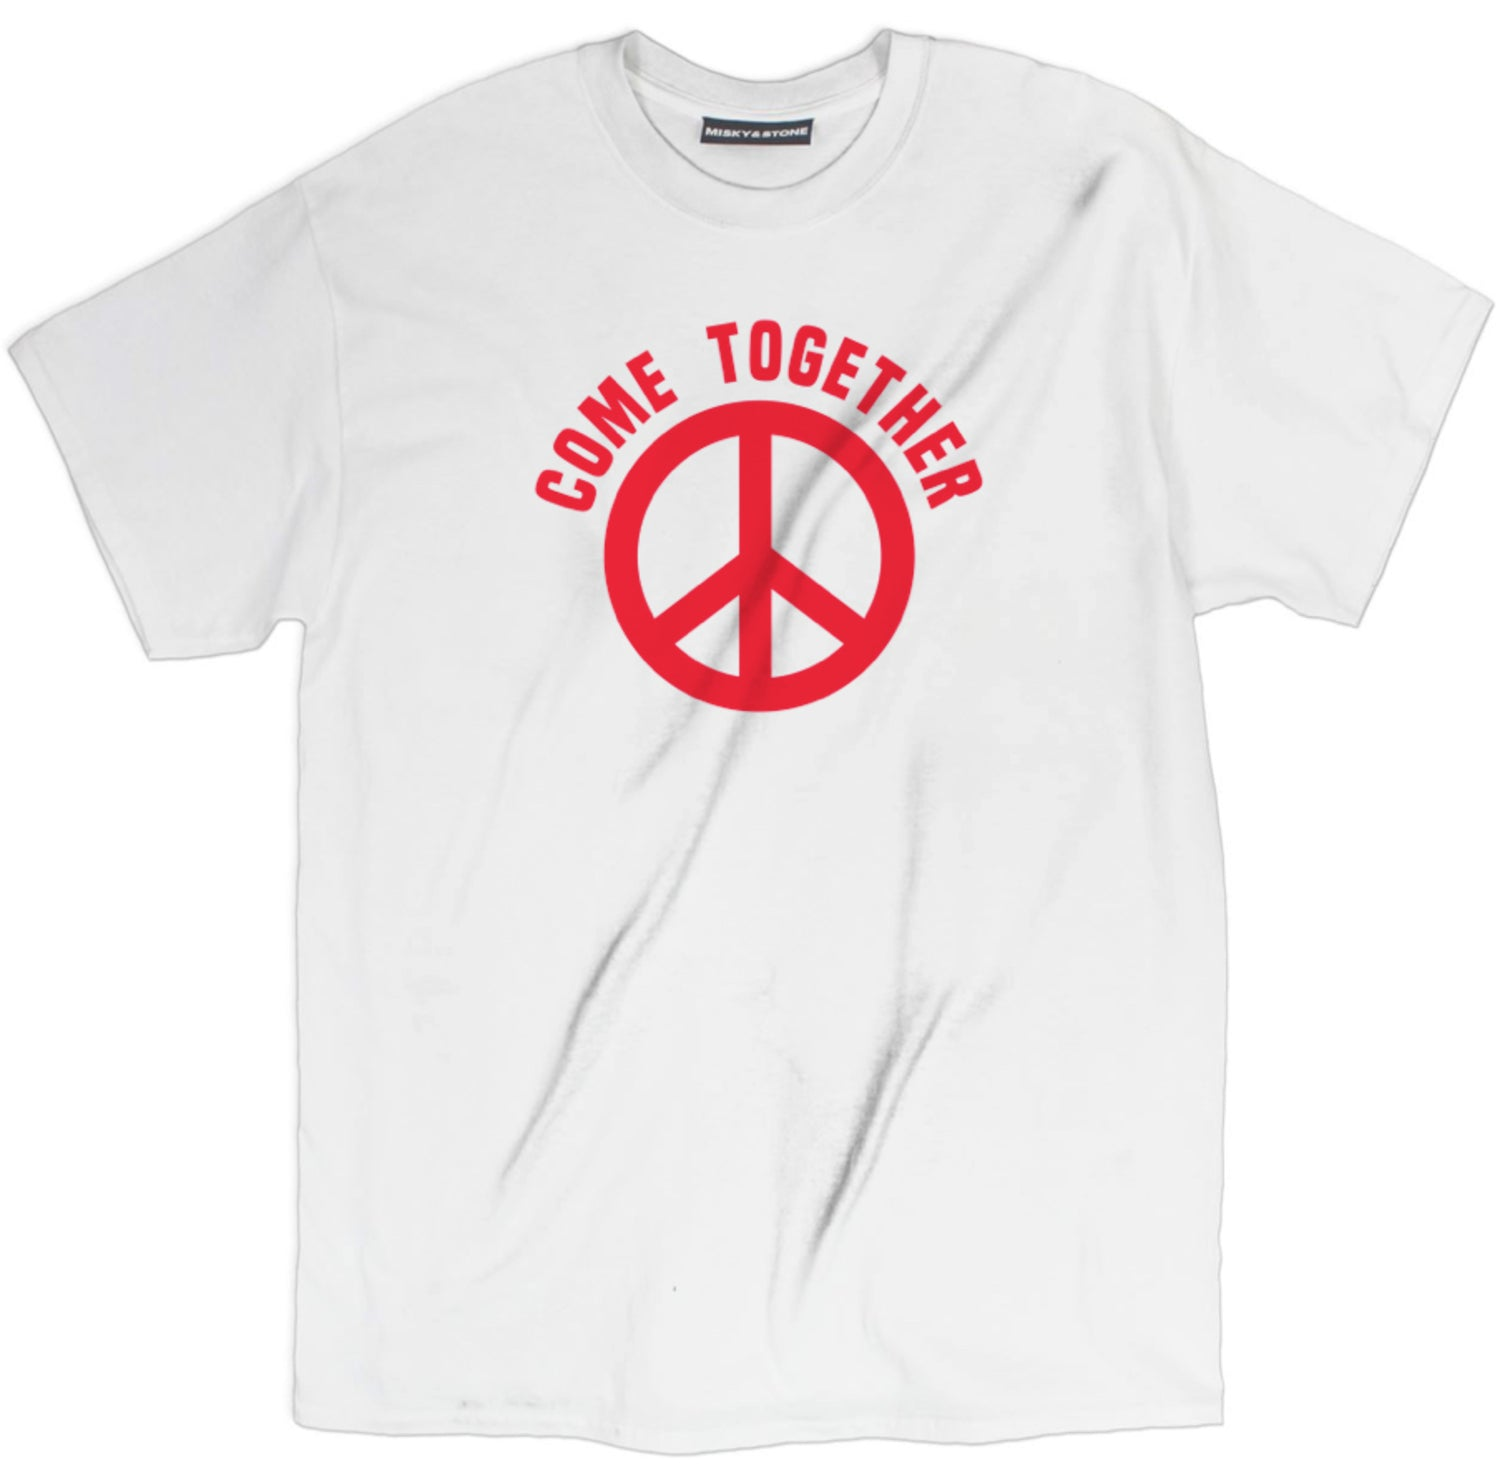 come together t shirt, peace sign t shirt, spirit shirts, spiritual t shirts, spiritual tee shirts, spiritual tee shirts, spiritual t shirts designs, inspirational quotes t shirts,